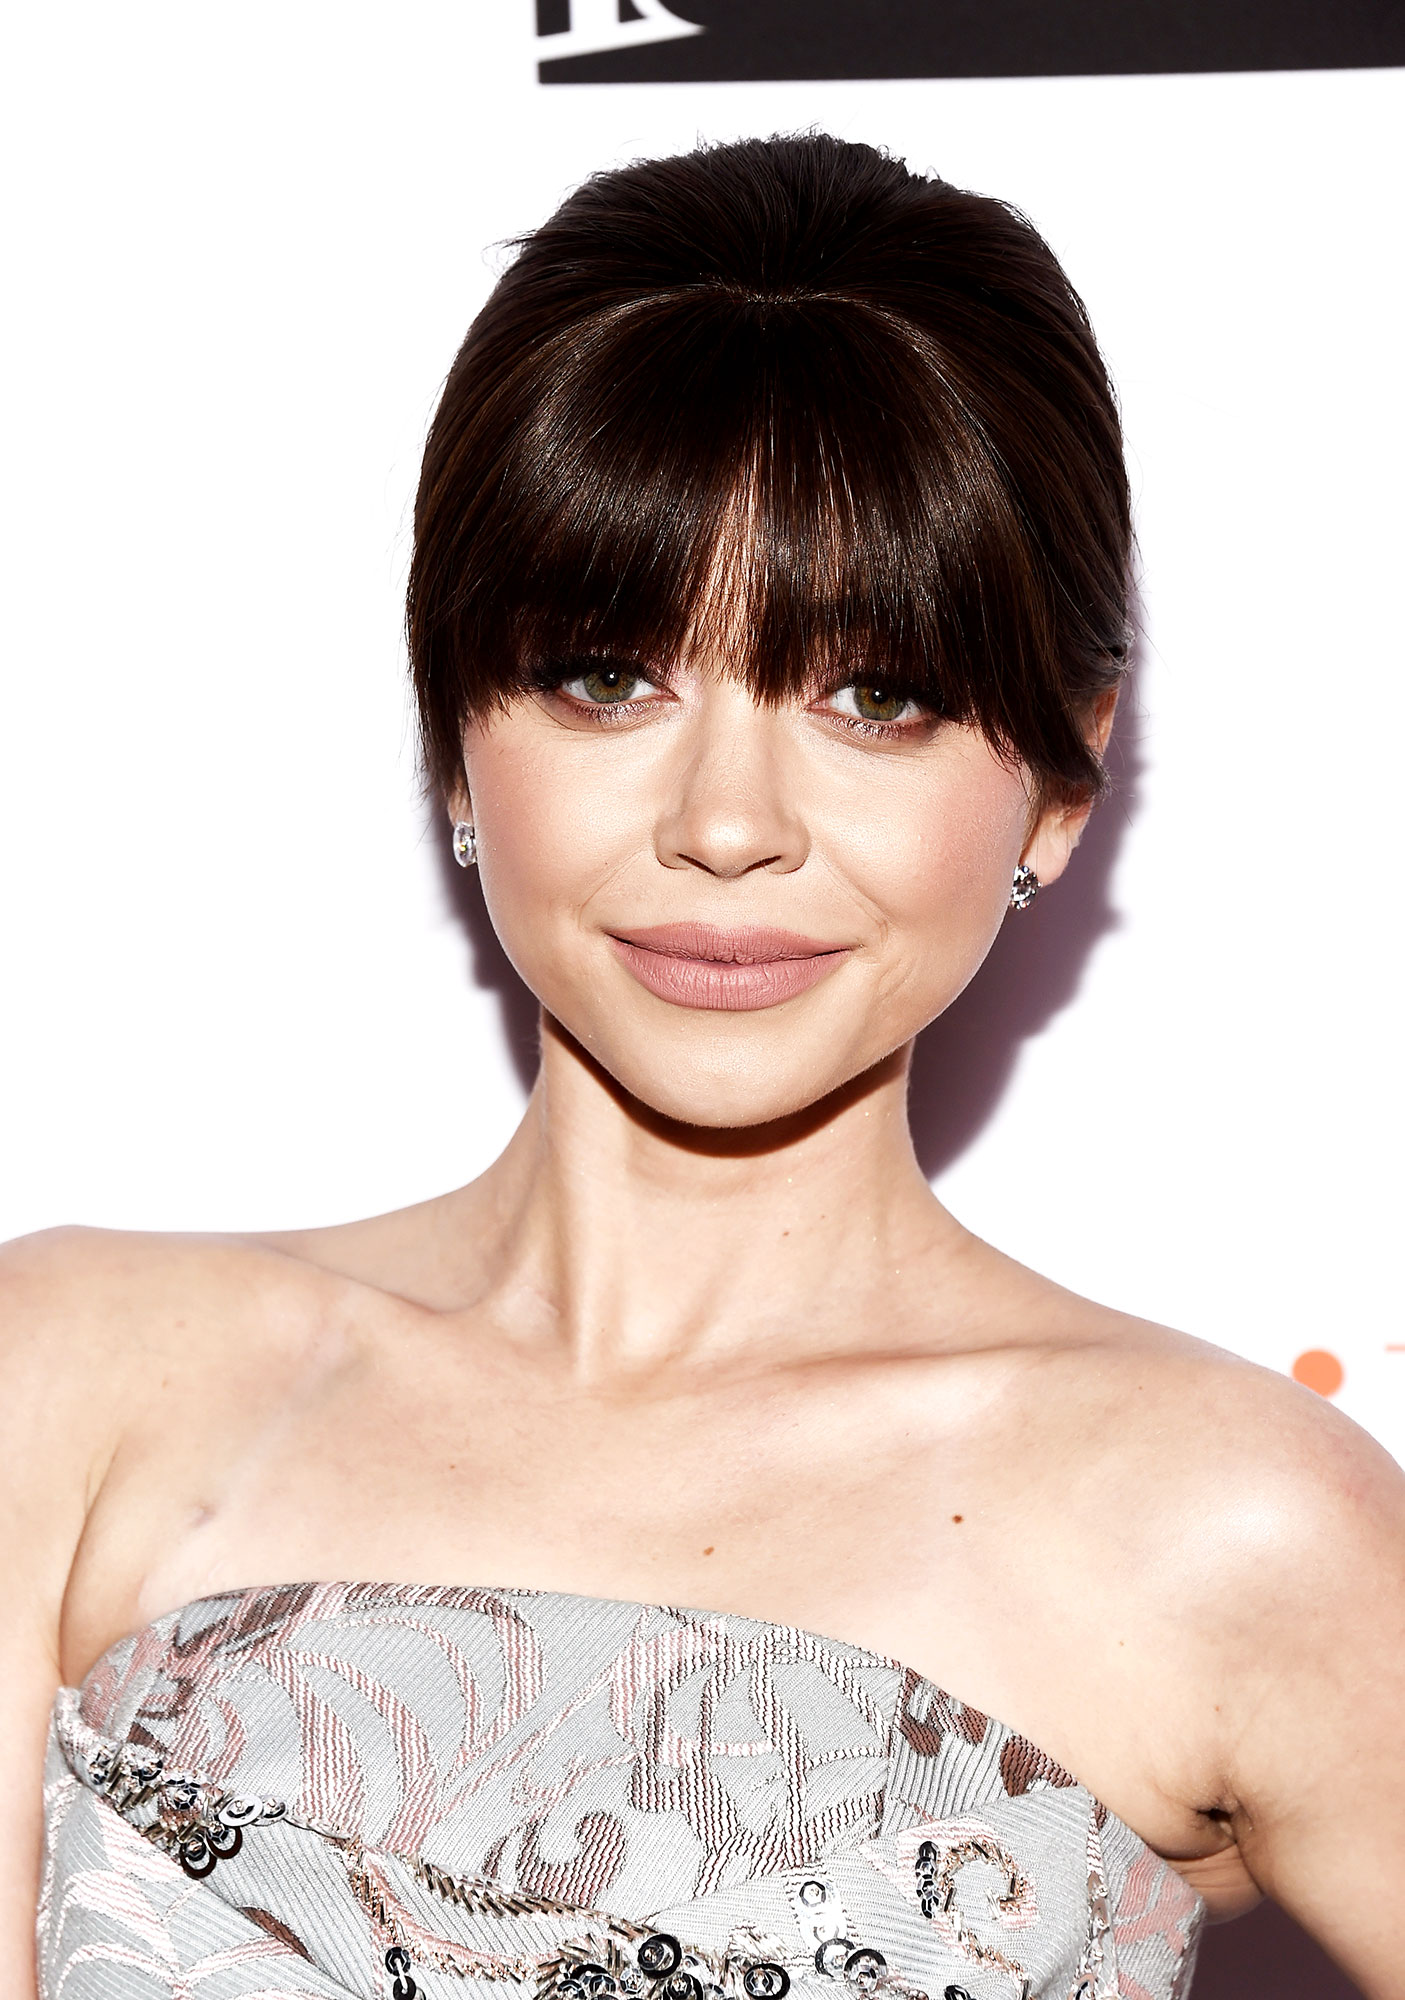 Sarah Hyland Celebrity Bangs: Fierce Fringe Inspo For Your Next Haircut - The Modern Family actress' heavy fringe at an April 2018 may have been the work of a hairpiece, but pro Ryan Richman shared on Instagram that he added some volume to the blunt strands by spritzing the AG Hair Tousled Texture Spray at the roots.